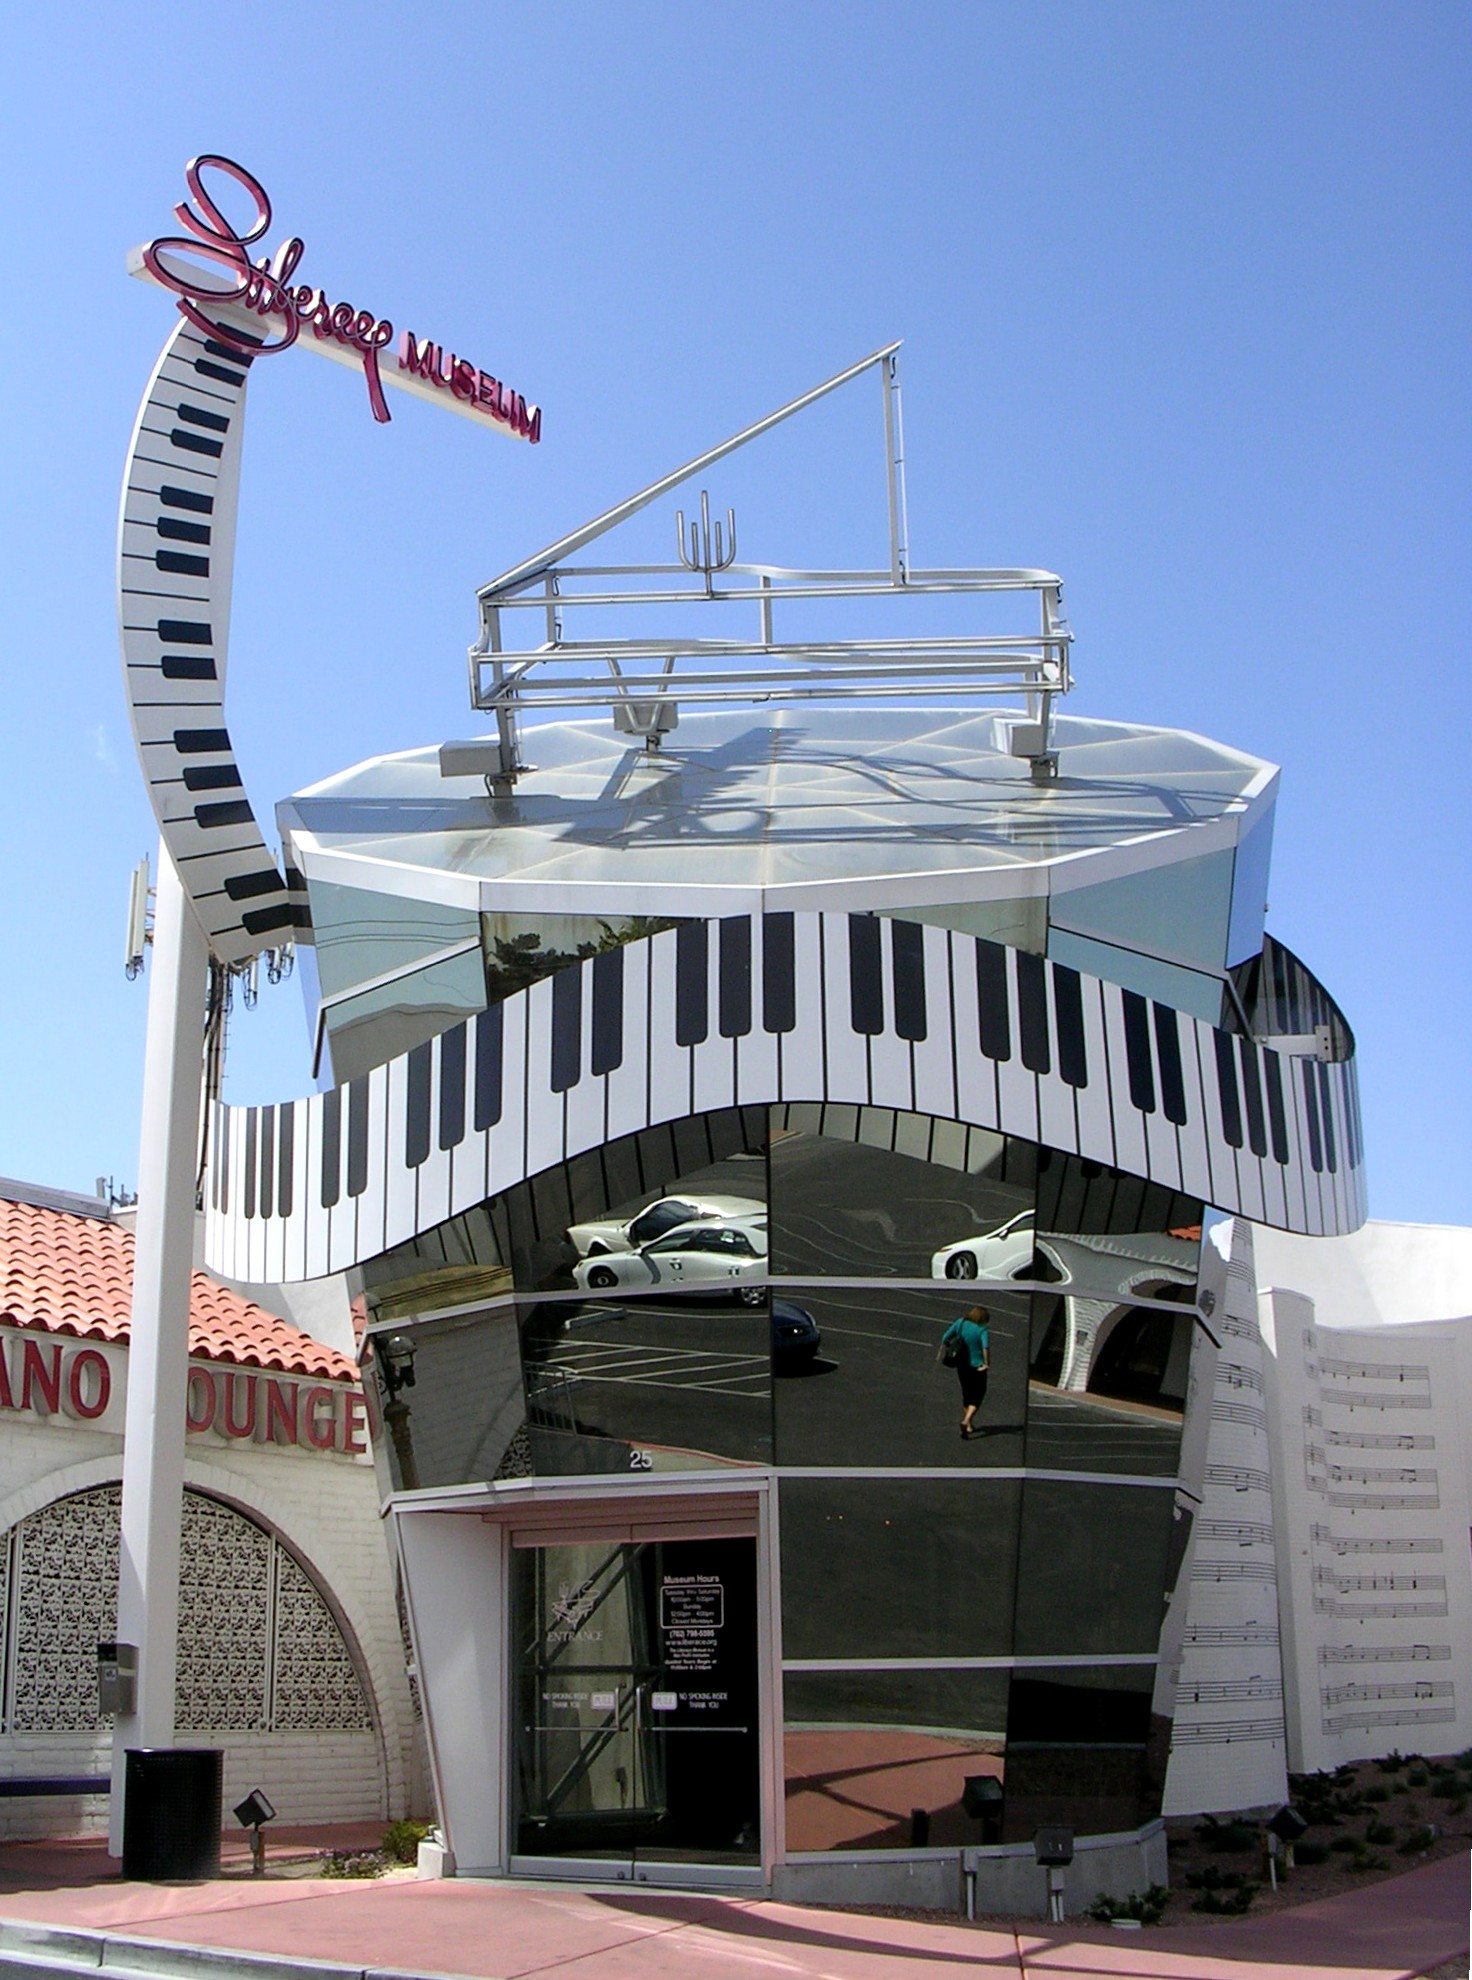 1000+ images about PIANOS on Pinterest.